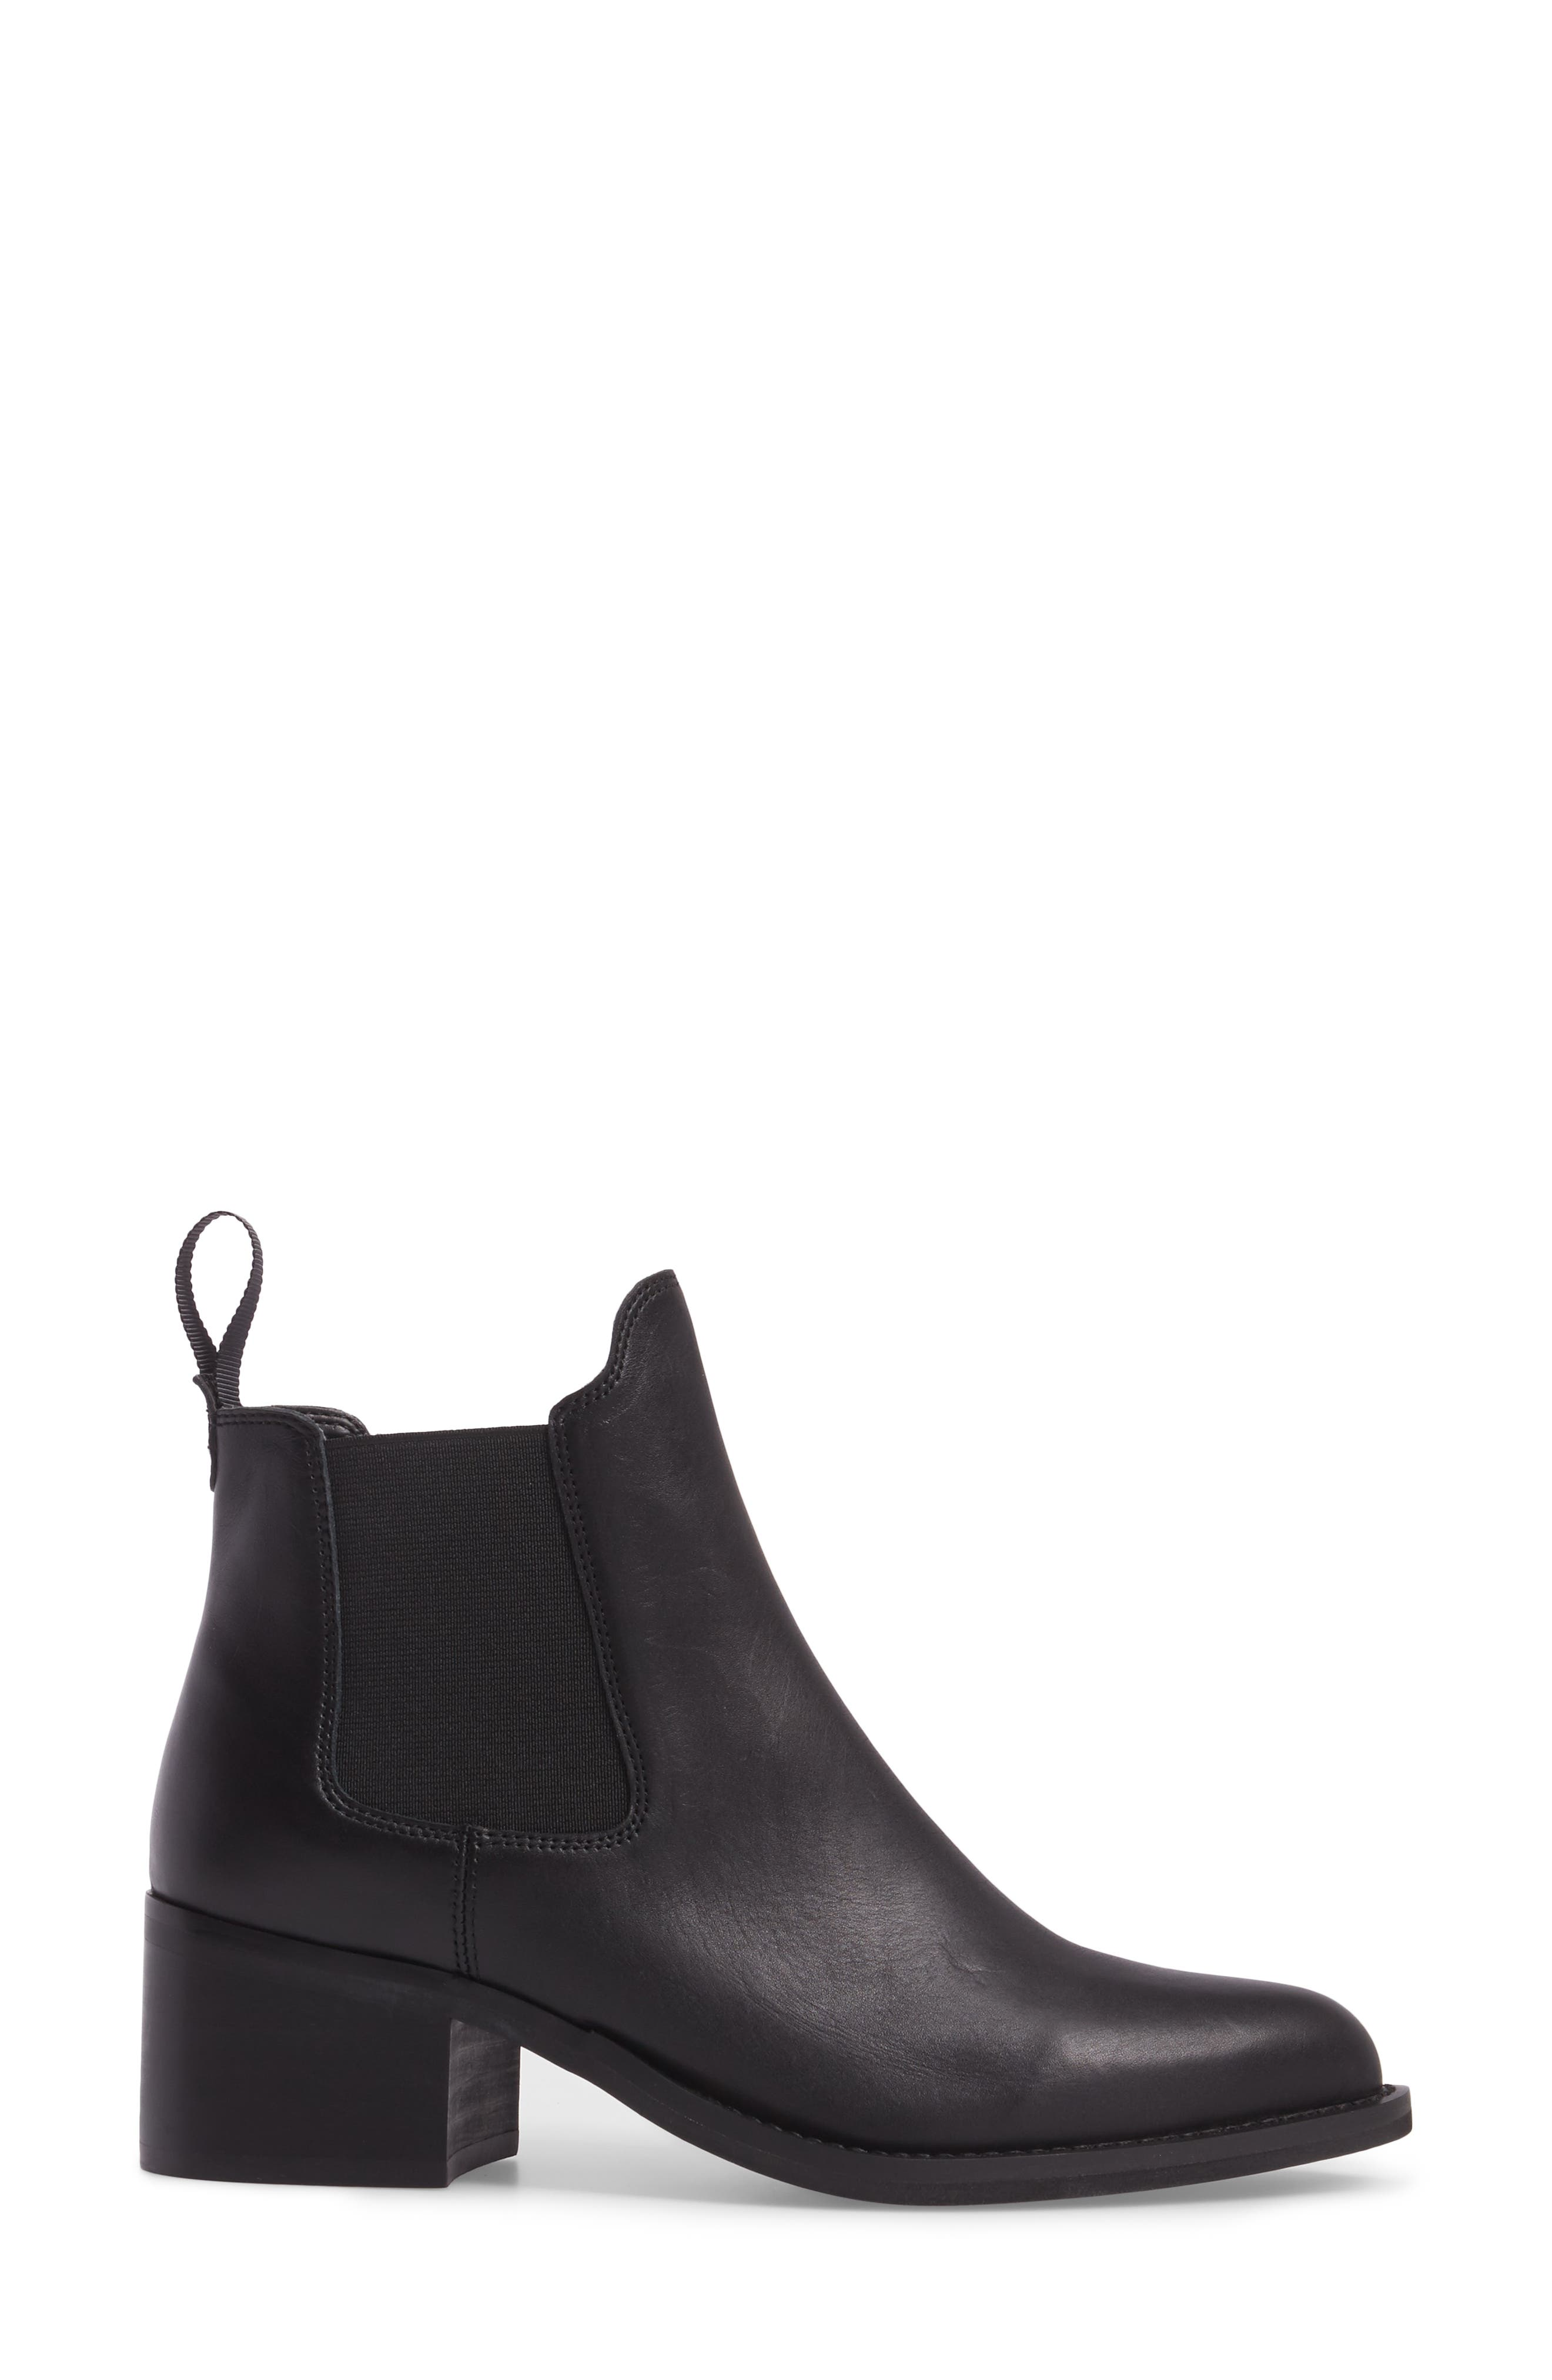 Fraya Ankle Bootie,                             Alternate thumbnail 3, color,                             BLACK LEATHER